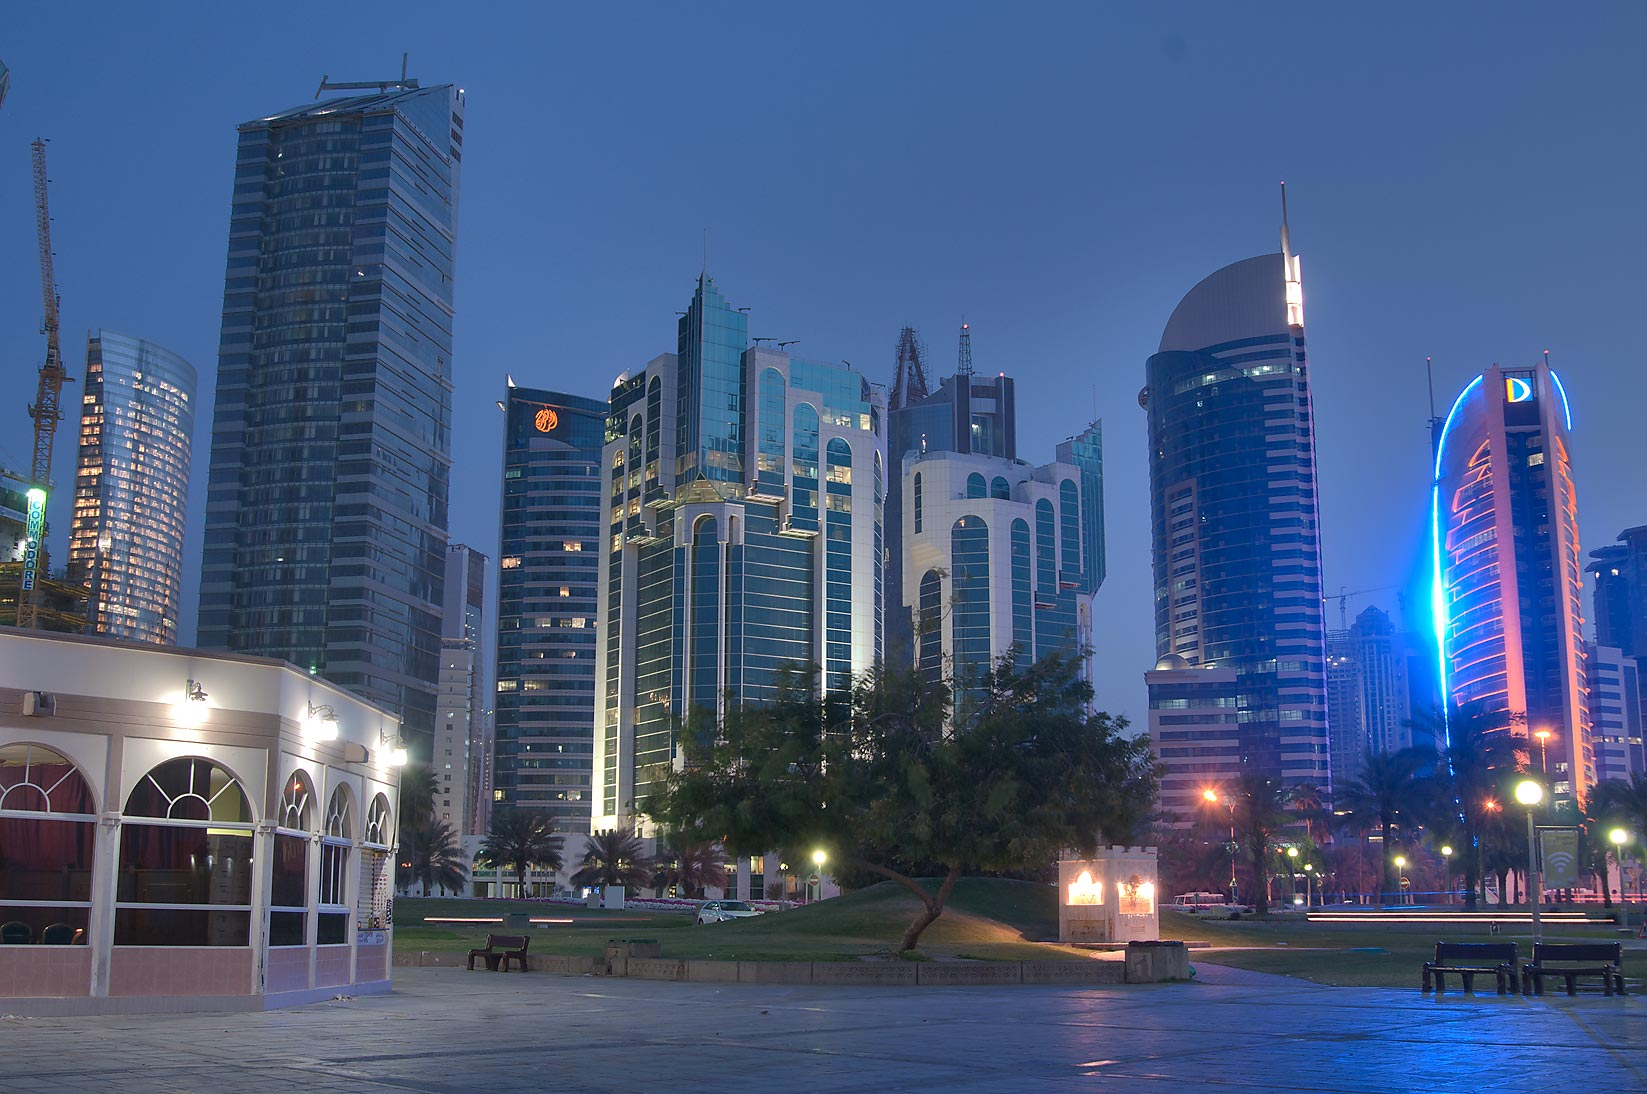 Cafeteria Ras Al Sho and Sheraton Park from seafront promenade. Doha, Qatar